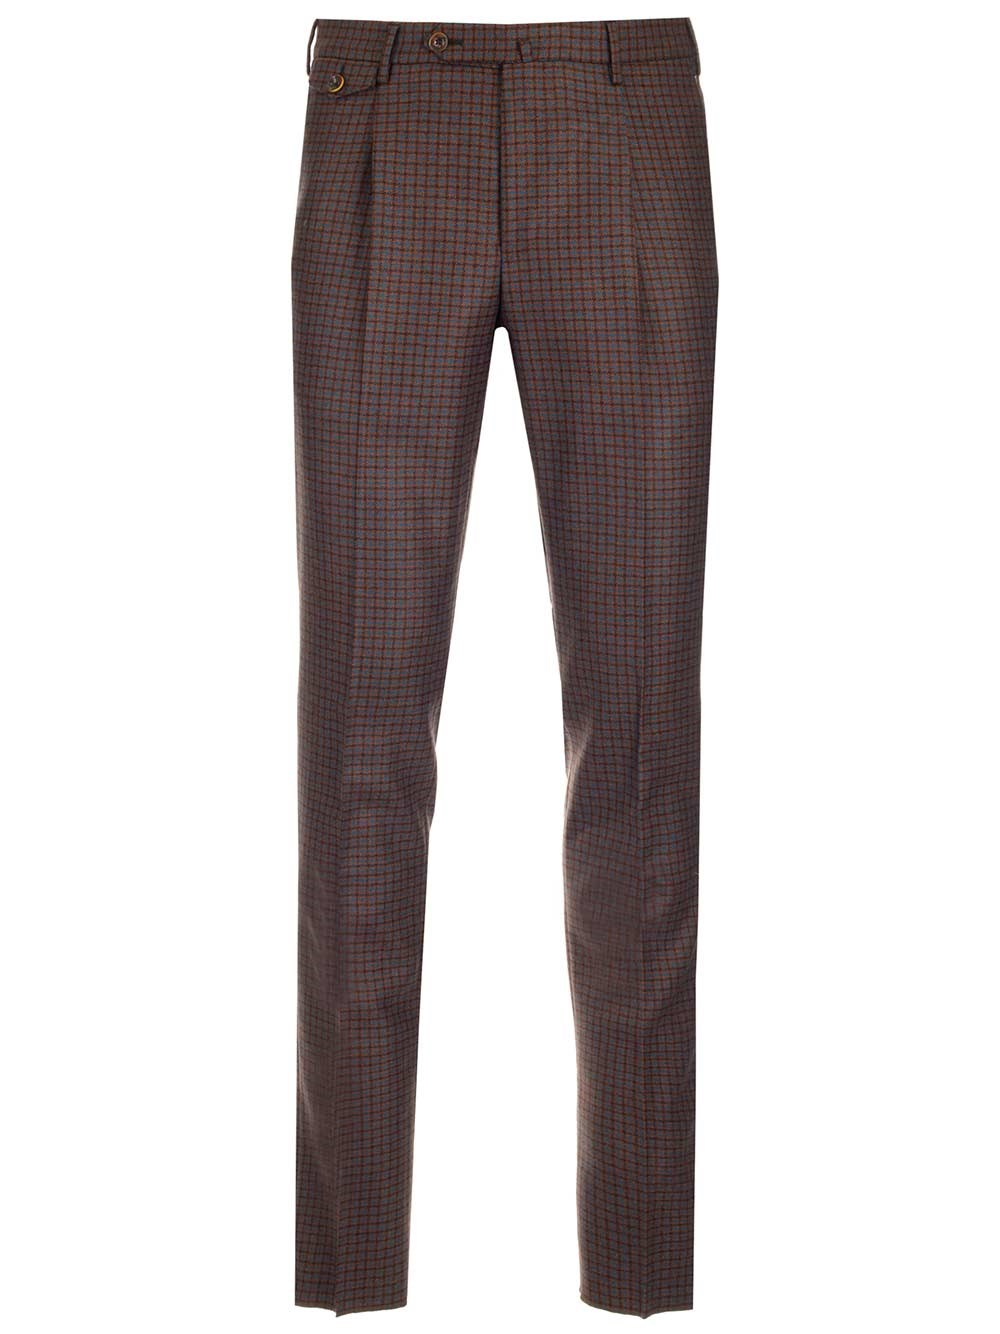 PT TORINO Checked Wool Trousers